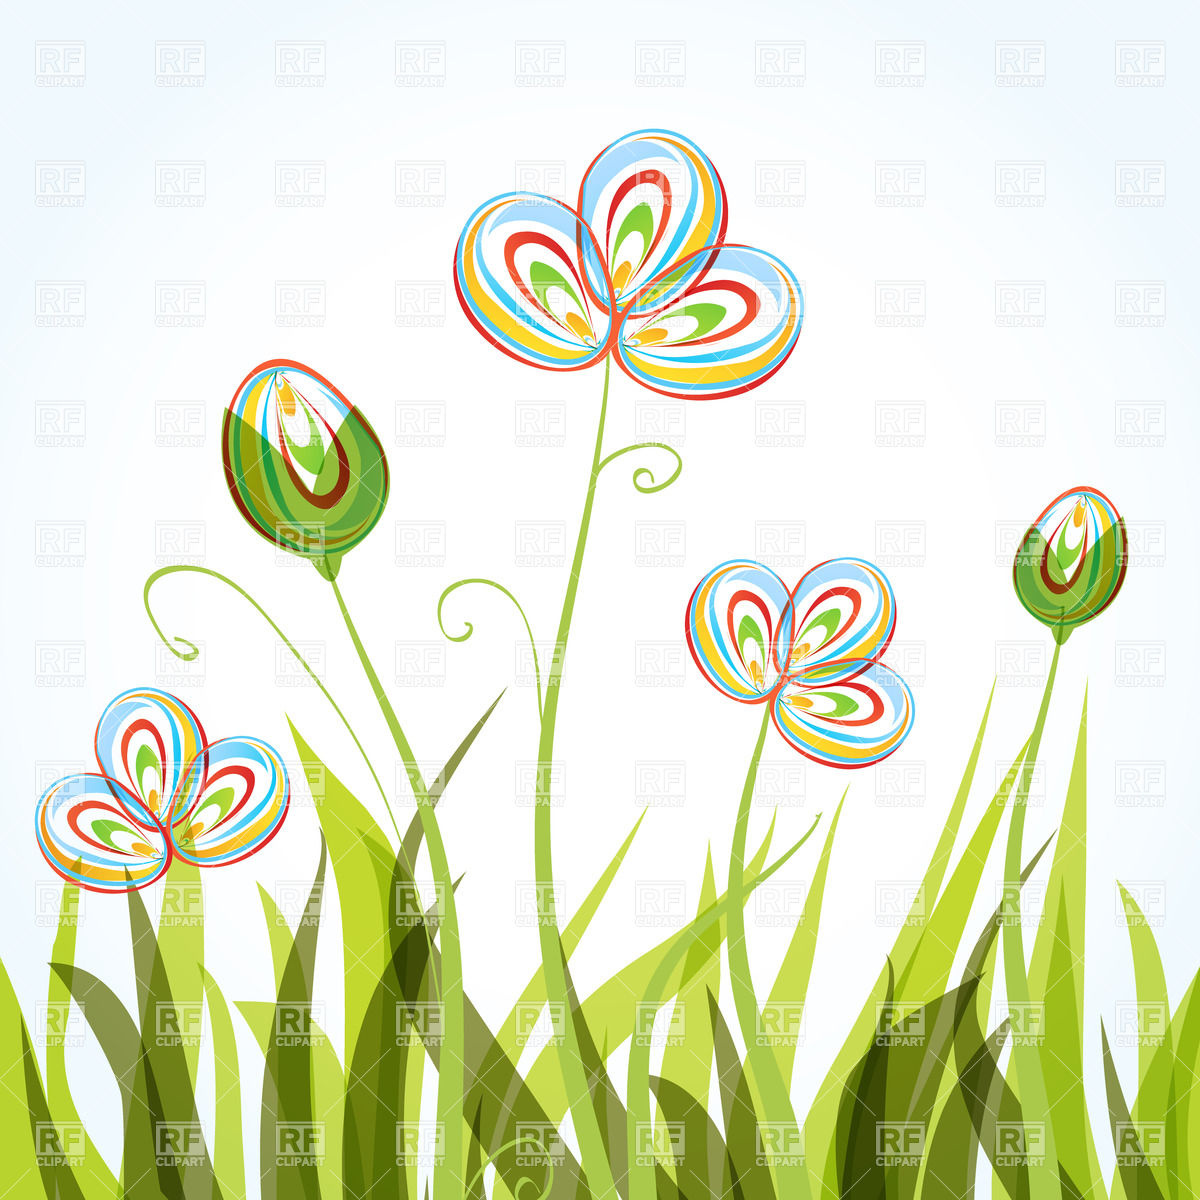 Flowers and grass clipart svg royalty free stock Flower grass clipart - ClipartFest svg royalty free stock